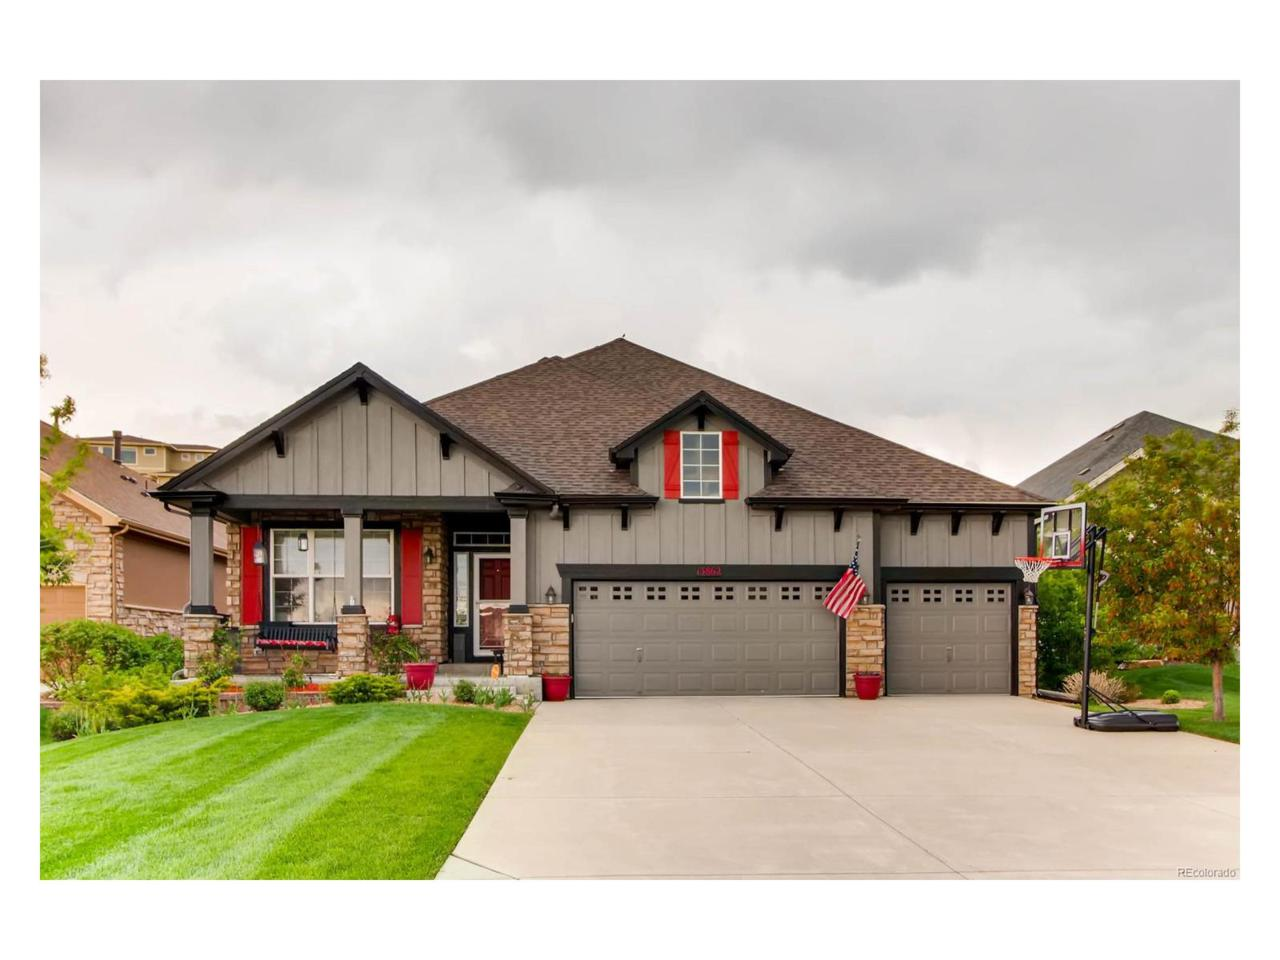 13862 W 87th Drive, Arvada, CO 80005 (MLS #9514176) :: 8z Real Estate